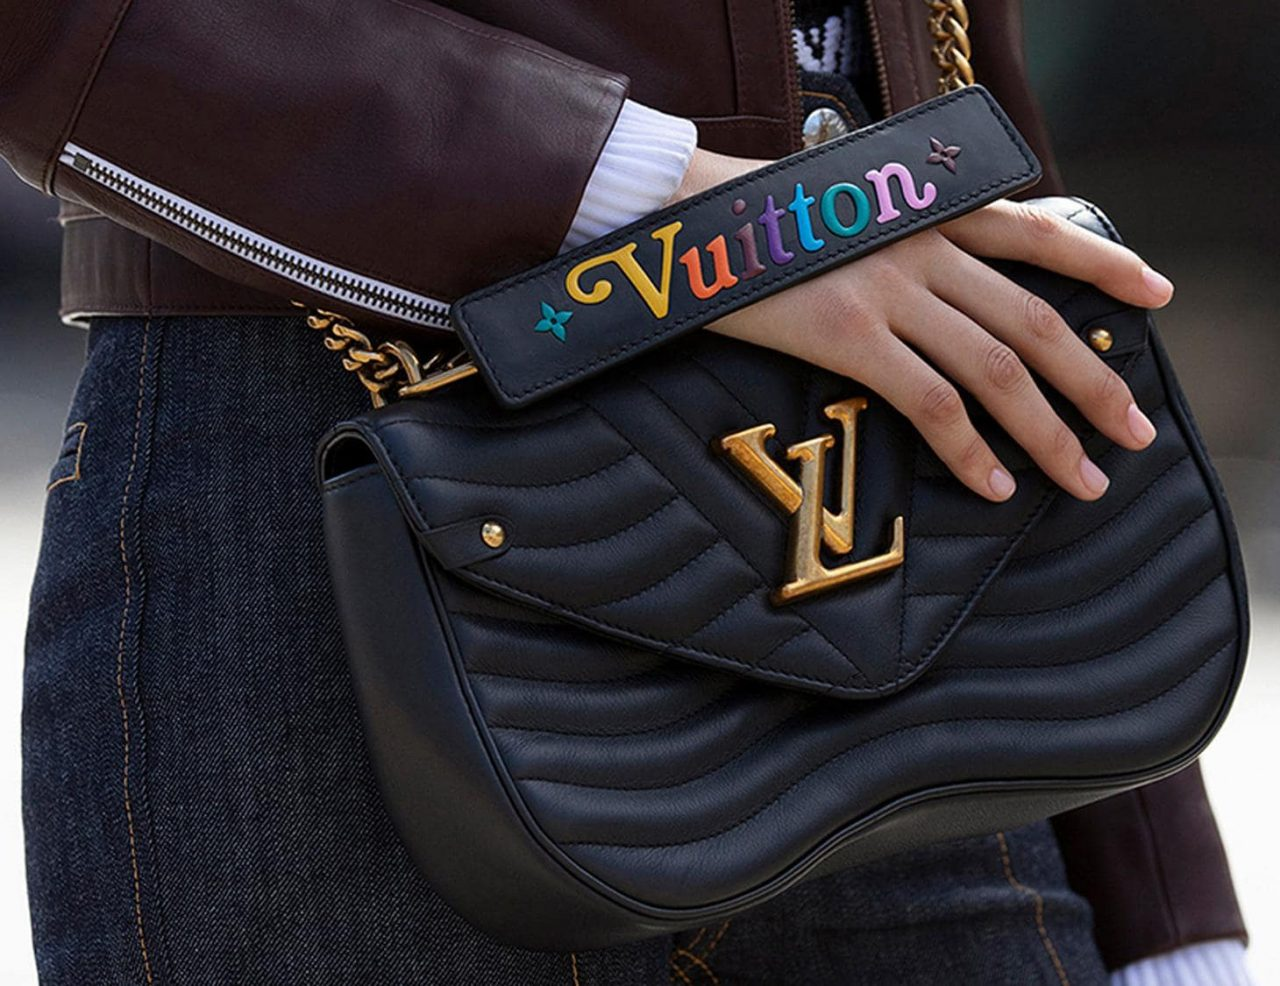 e68c16be57cd Introducing the Louis Vuitton New Wave Chain Bag from Fall Winter 2018  Collection. The designer couldn t resist the trend of quilts.